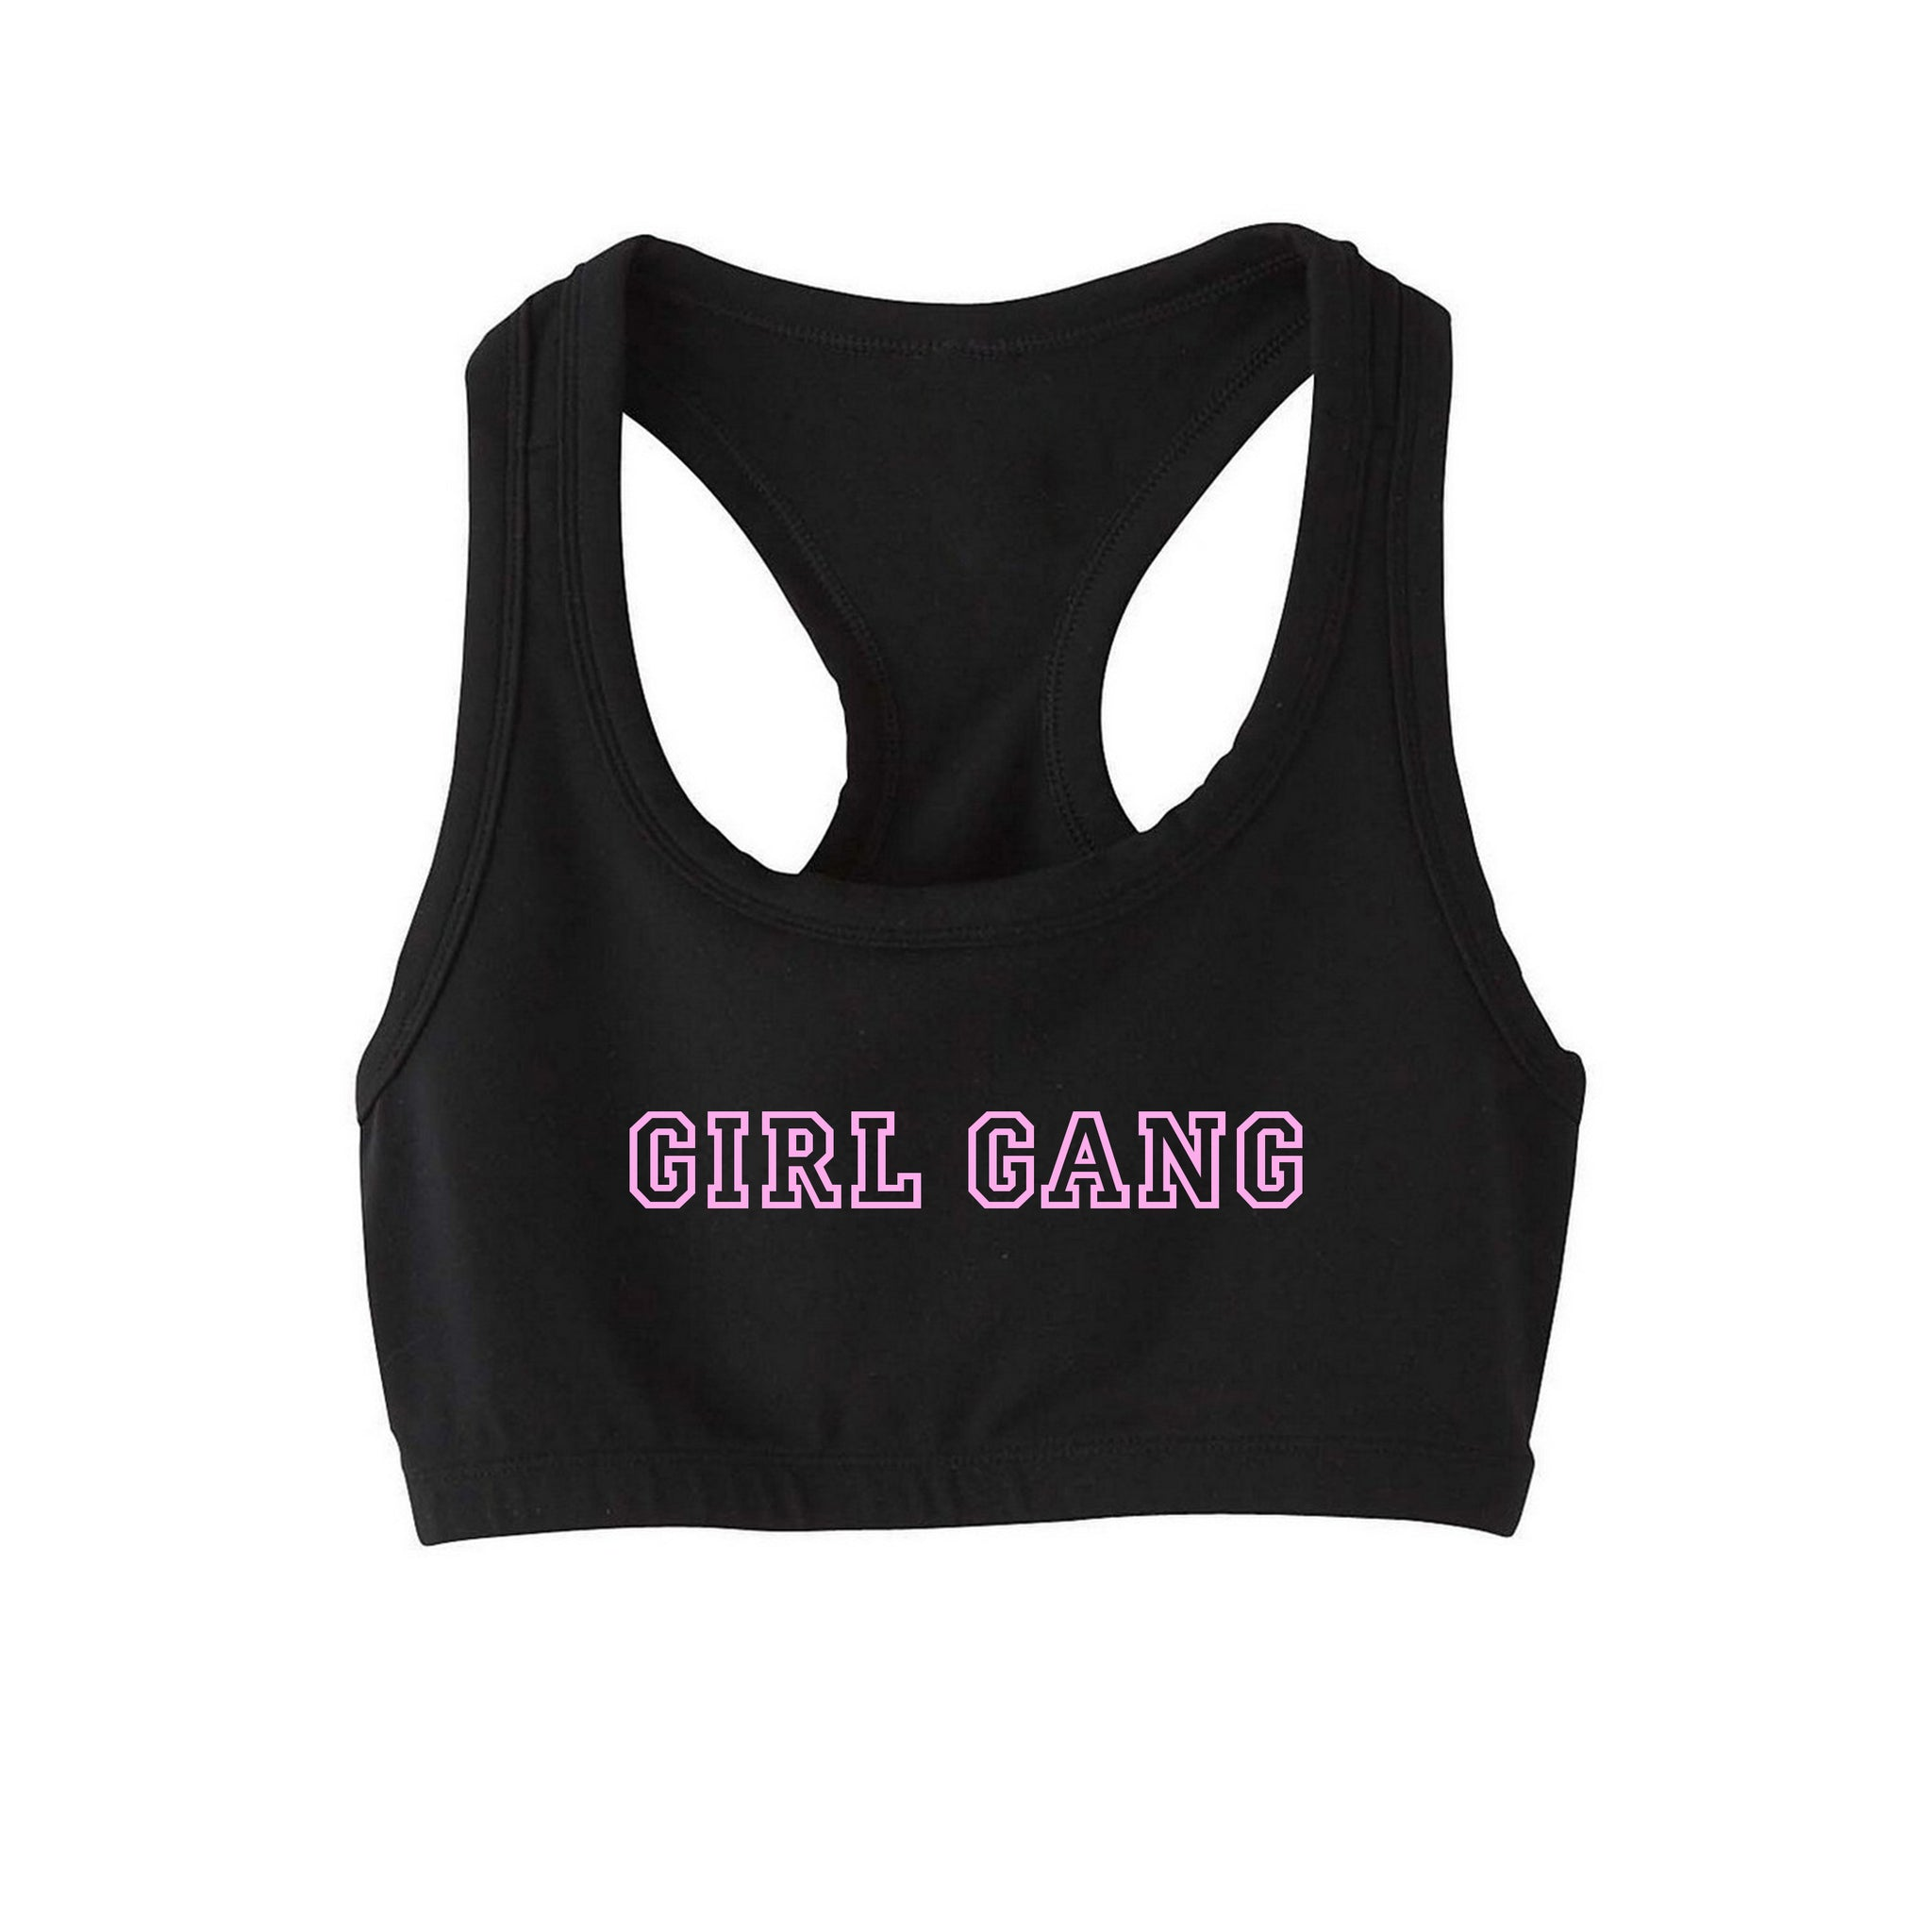 GIRL GANG [SPORTS BRA]